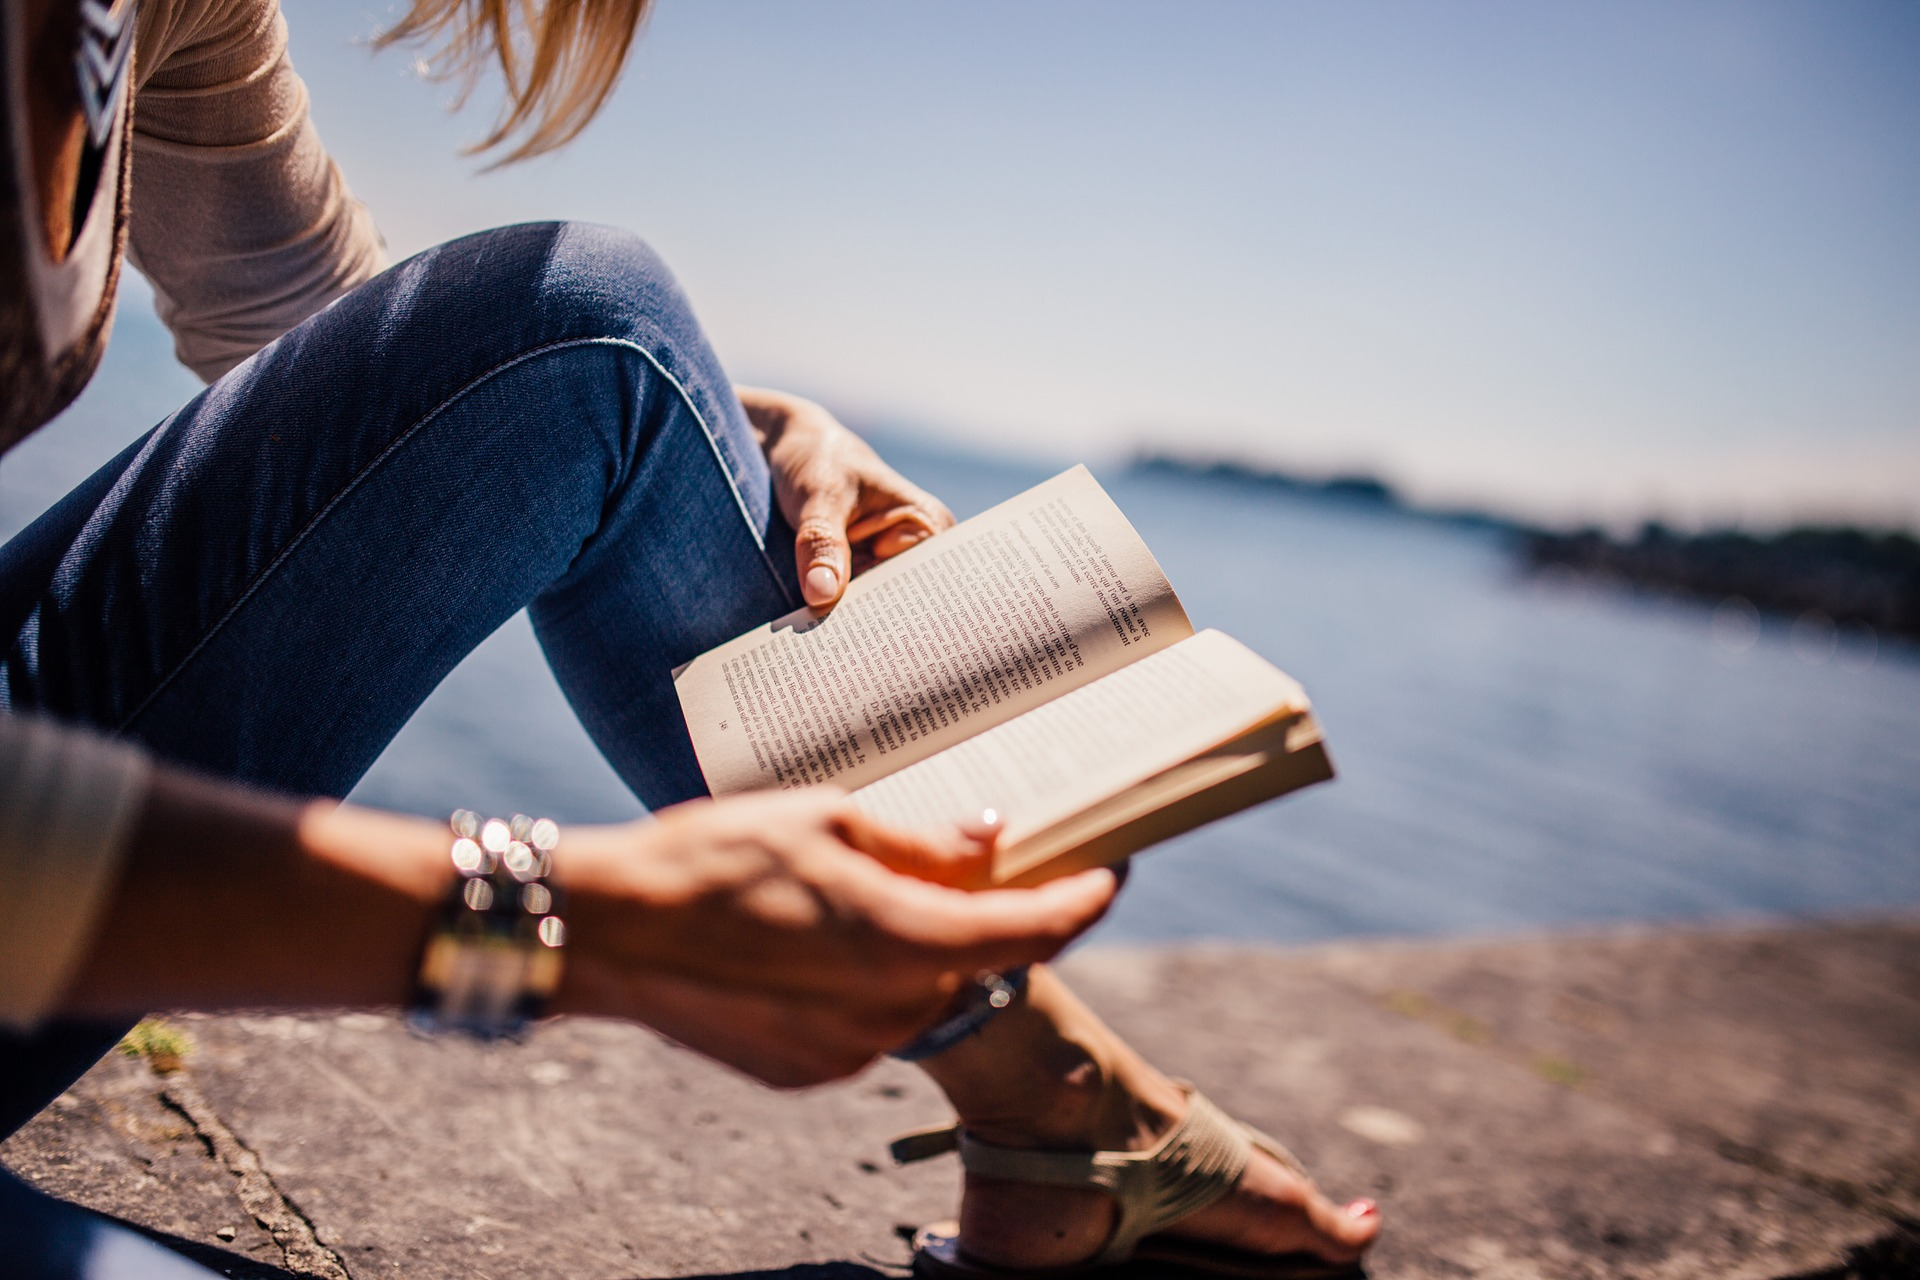 Let's Talk About Books: How Reading Makes us Sociable